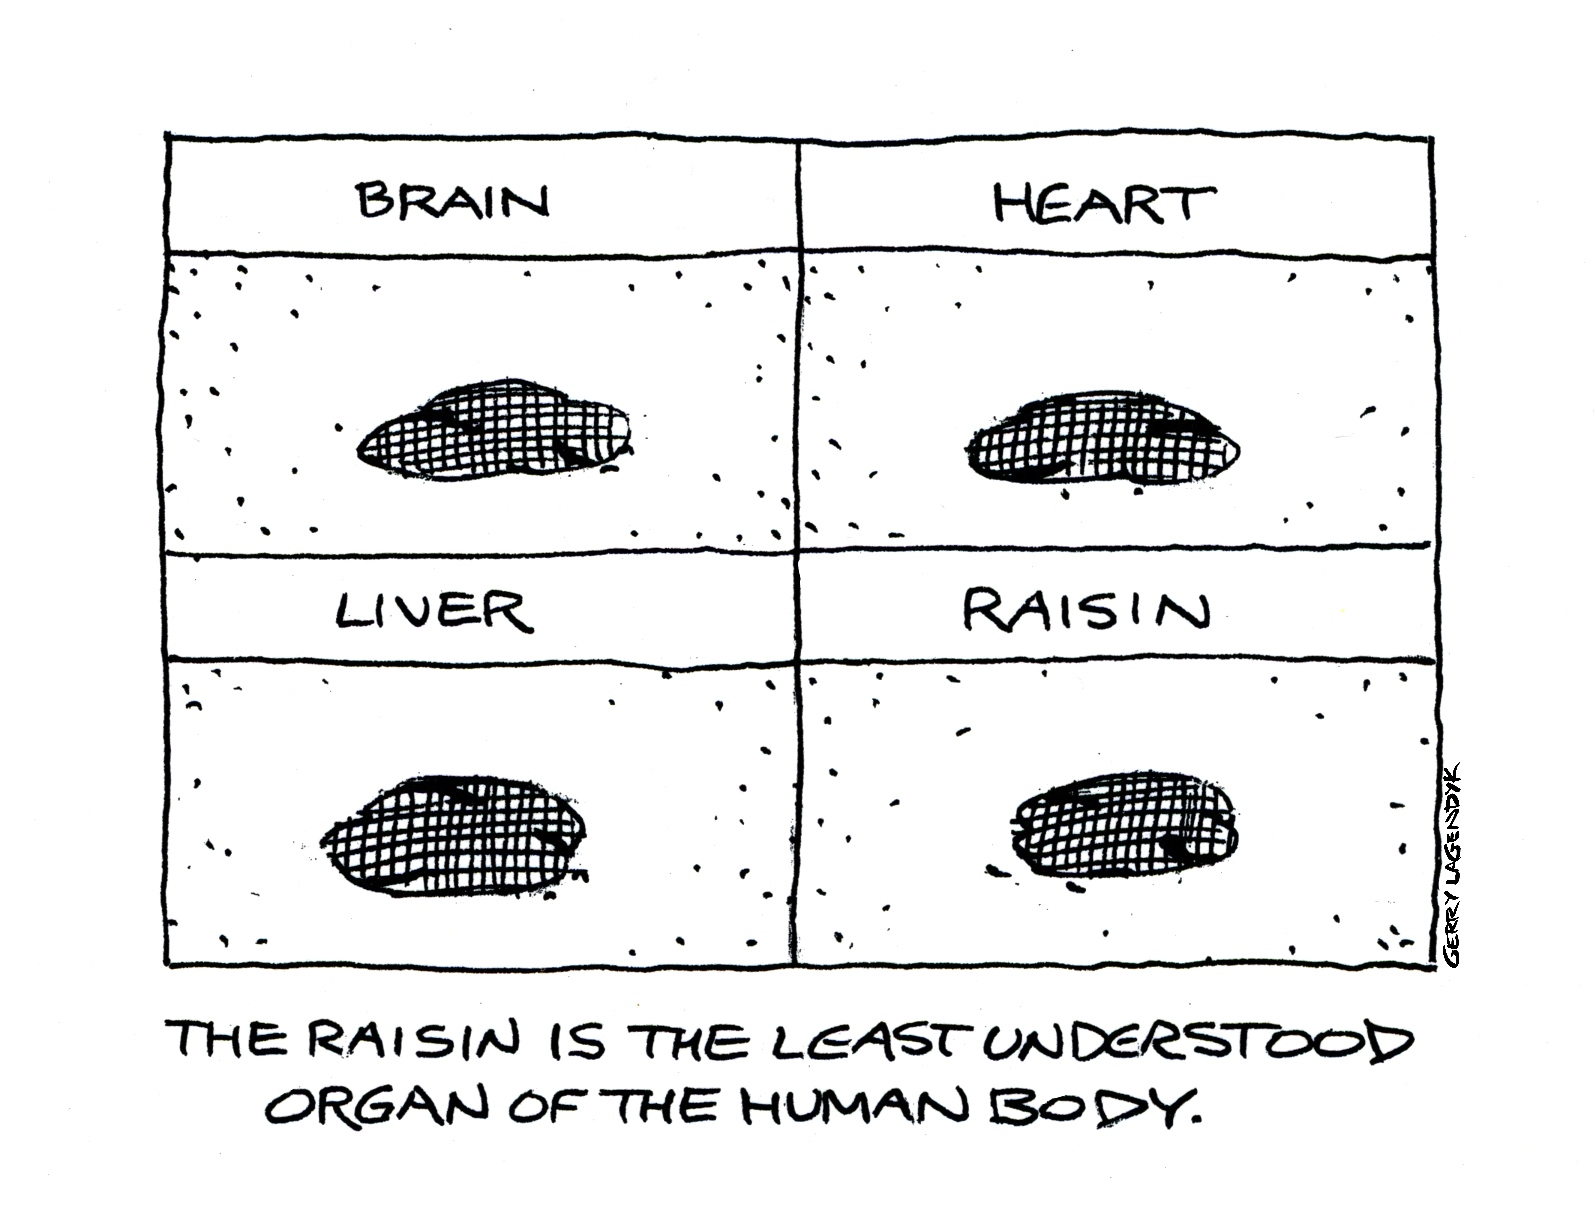 Gerry Lagendyk, raisin, internal organs